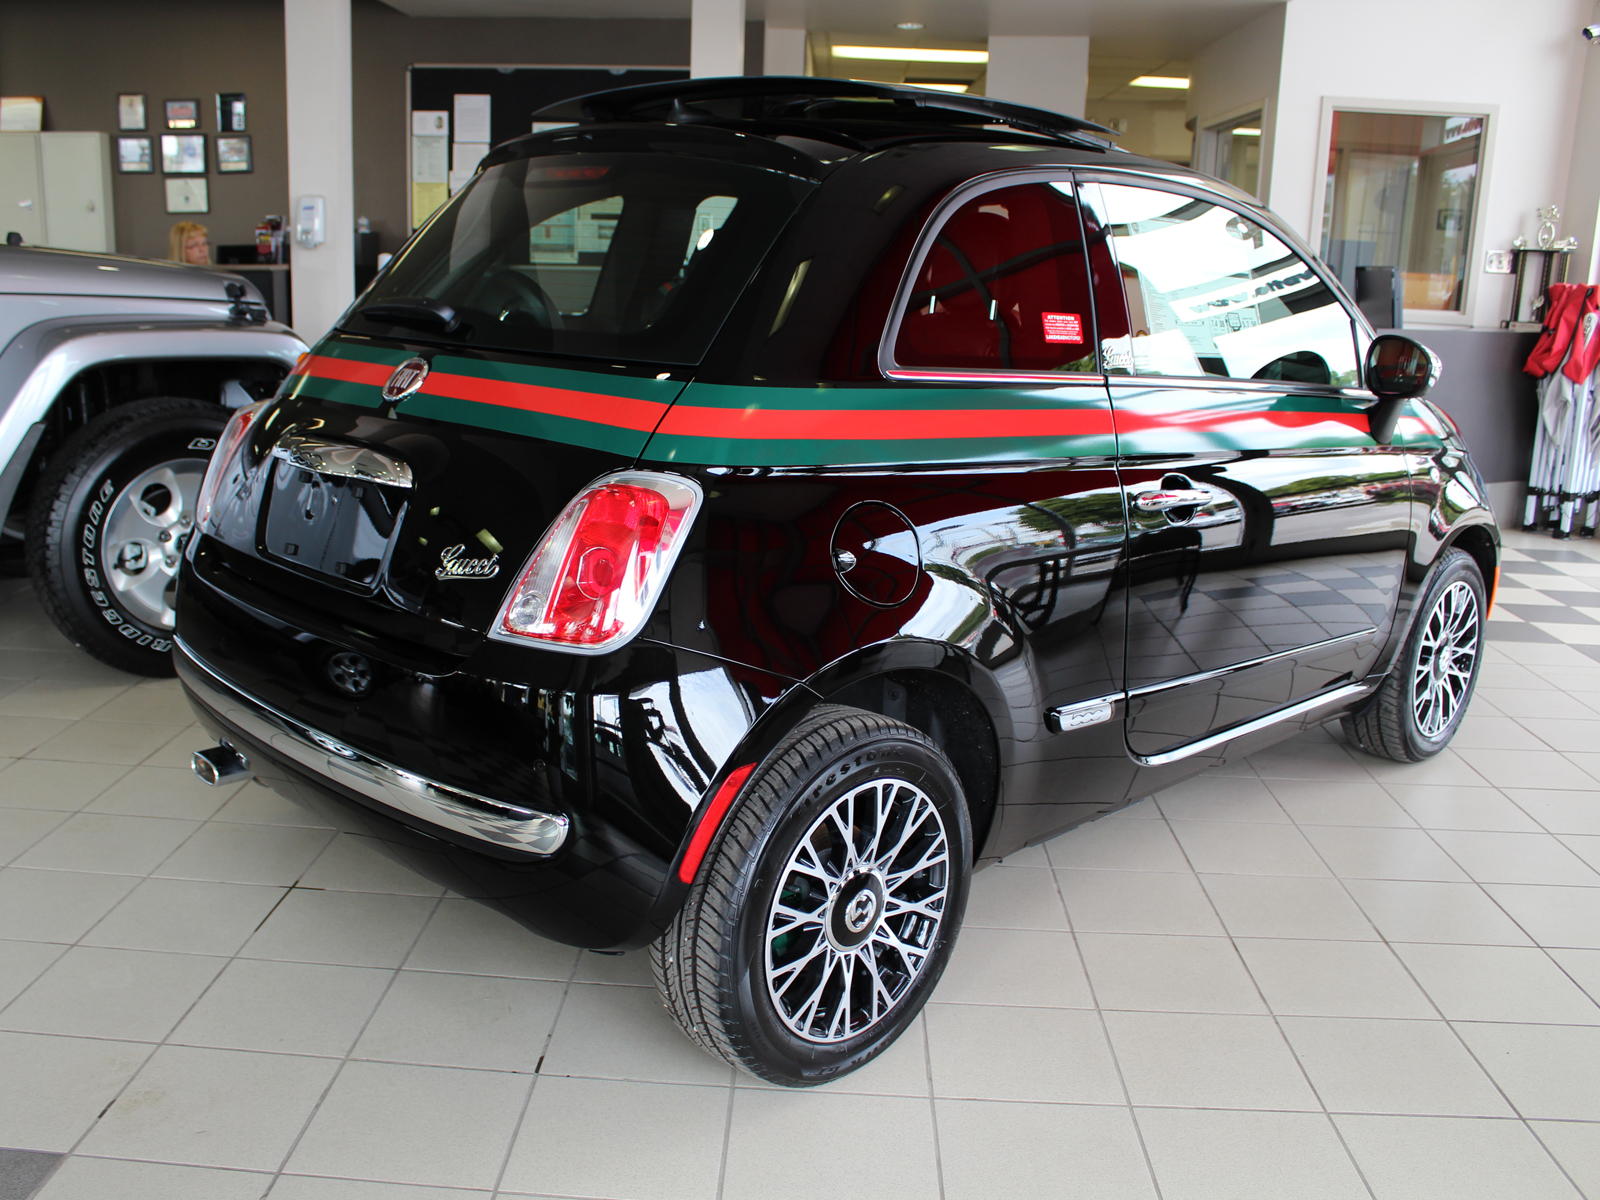 2013 fiat 500 gucci ottawadodge. Black Bedroom Furniture Sets. Home Design Ideas